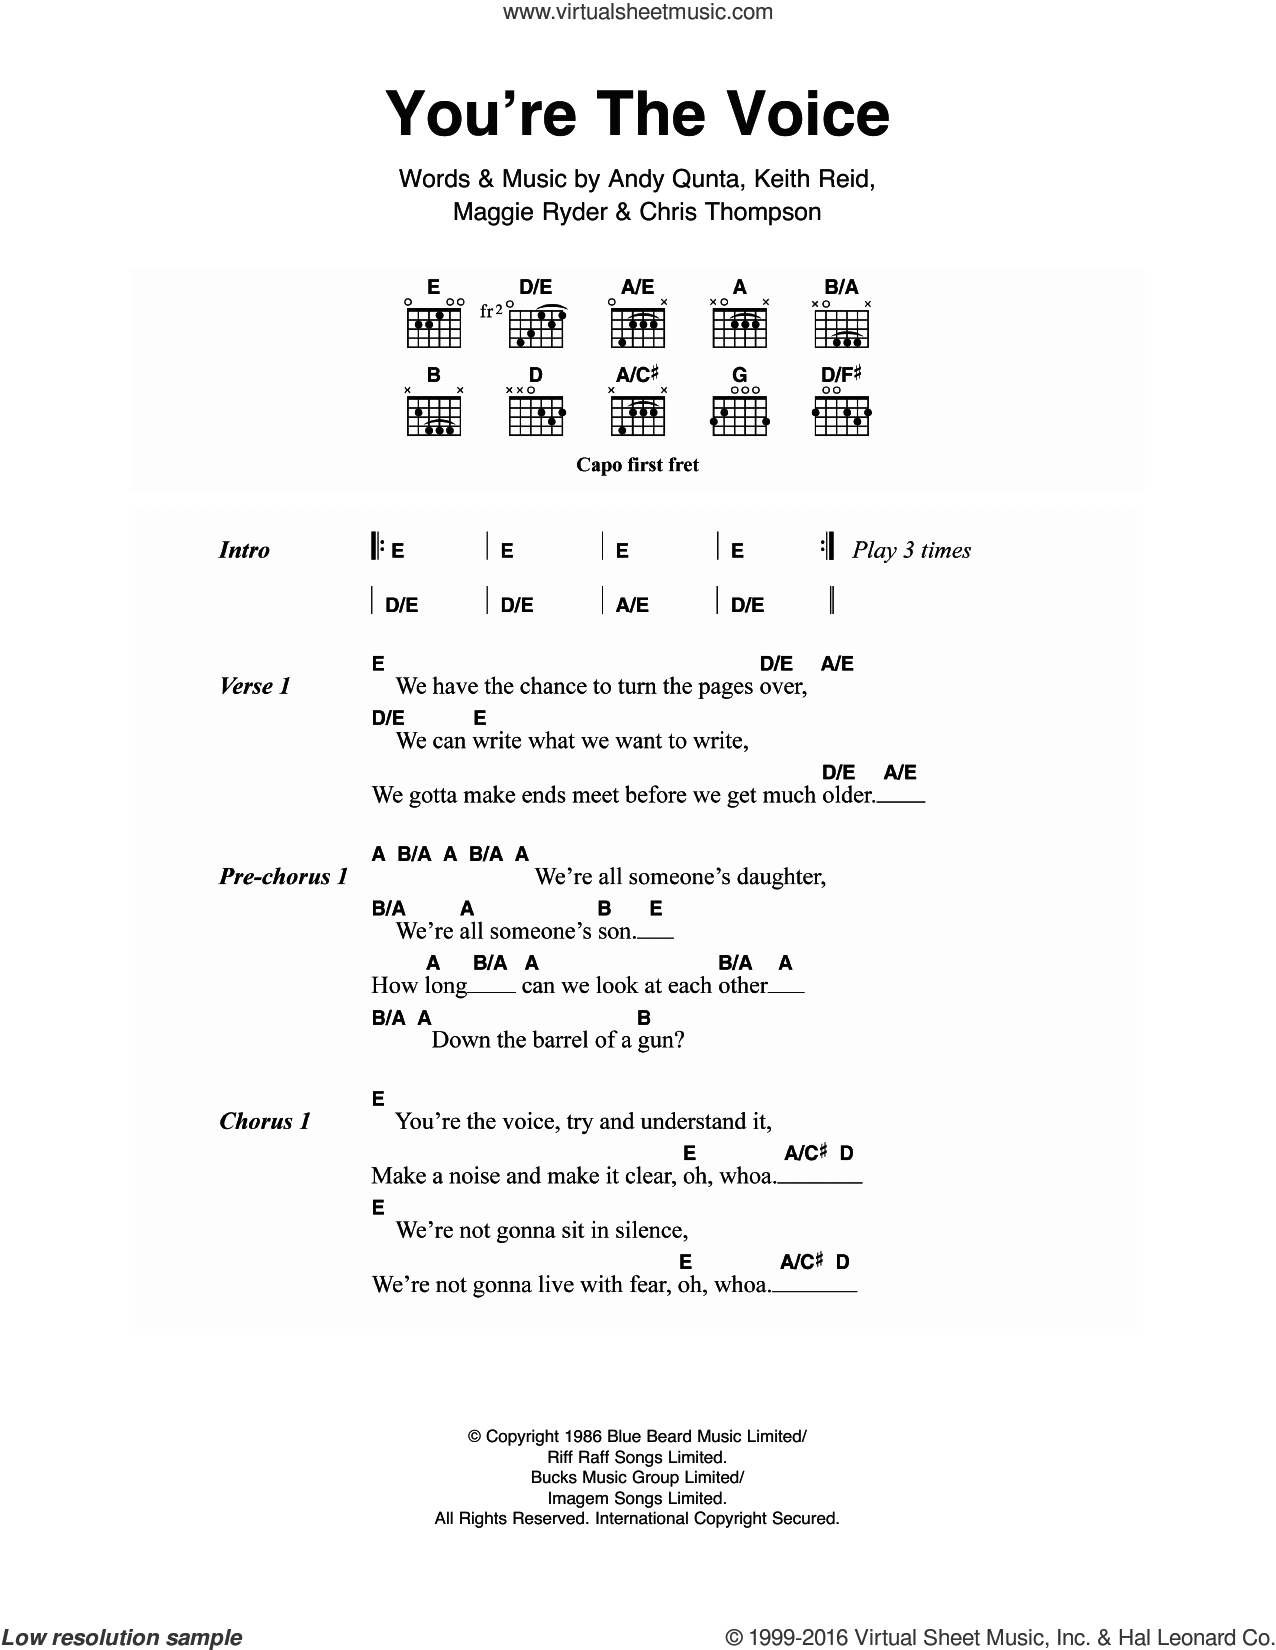 You're The Voice sheet music for guitar (chords) by John Farnham, Andy Qunta, Chris Thompson, Keith Reid and Maggie Ryder, intermediate